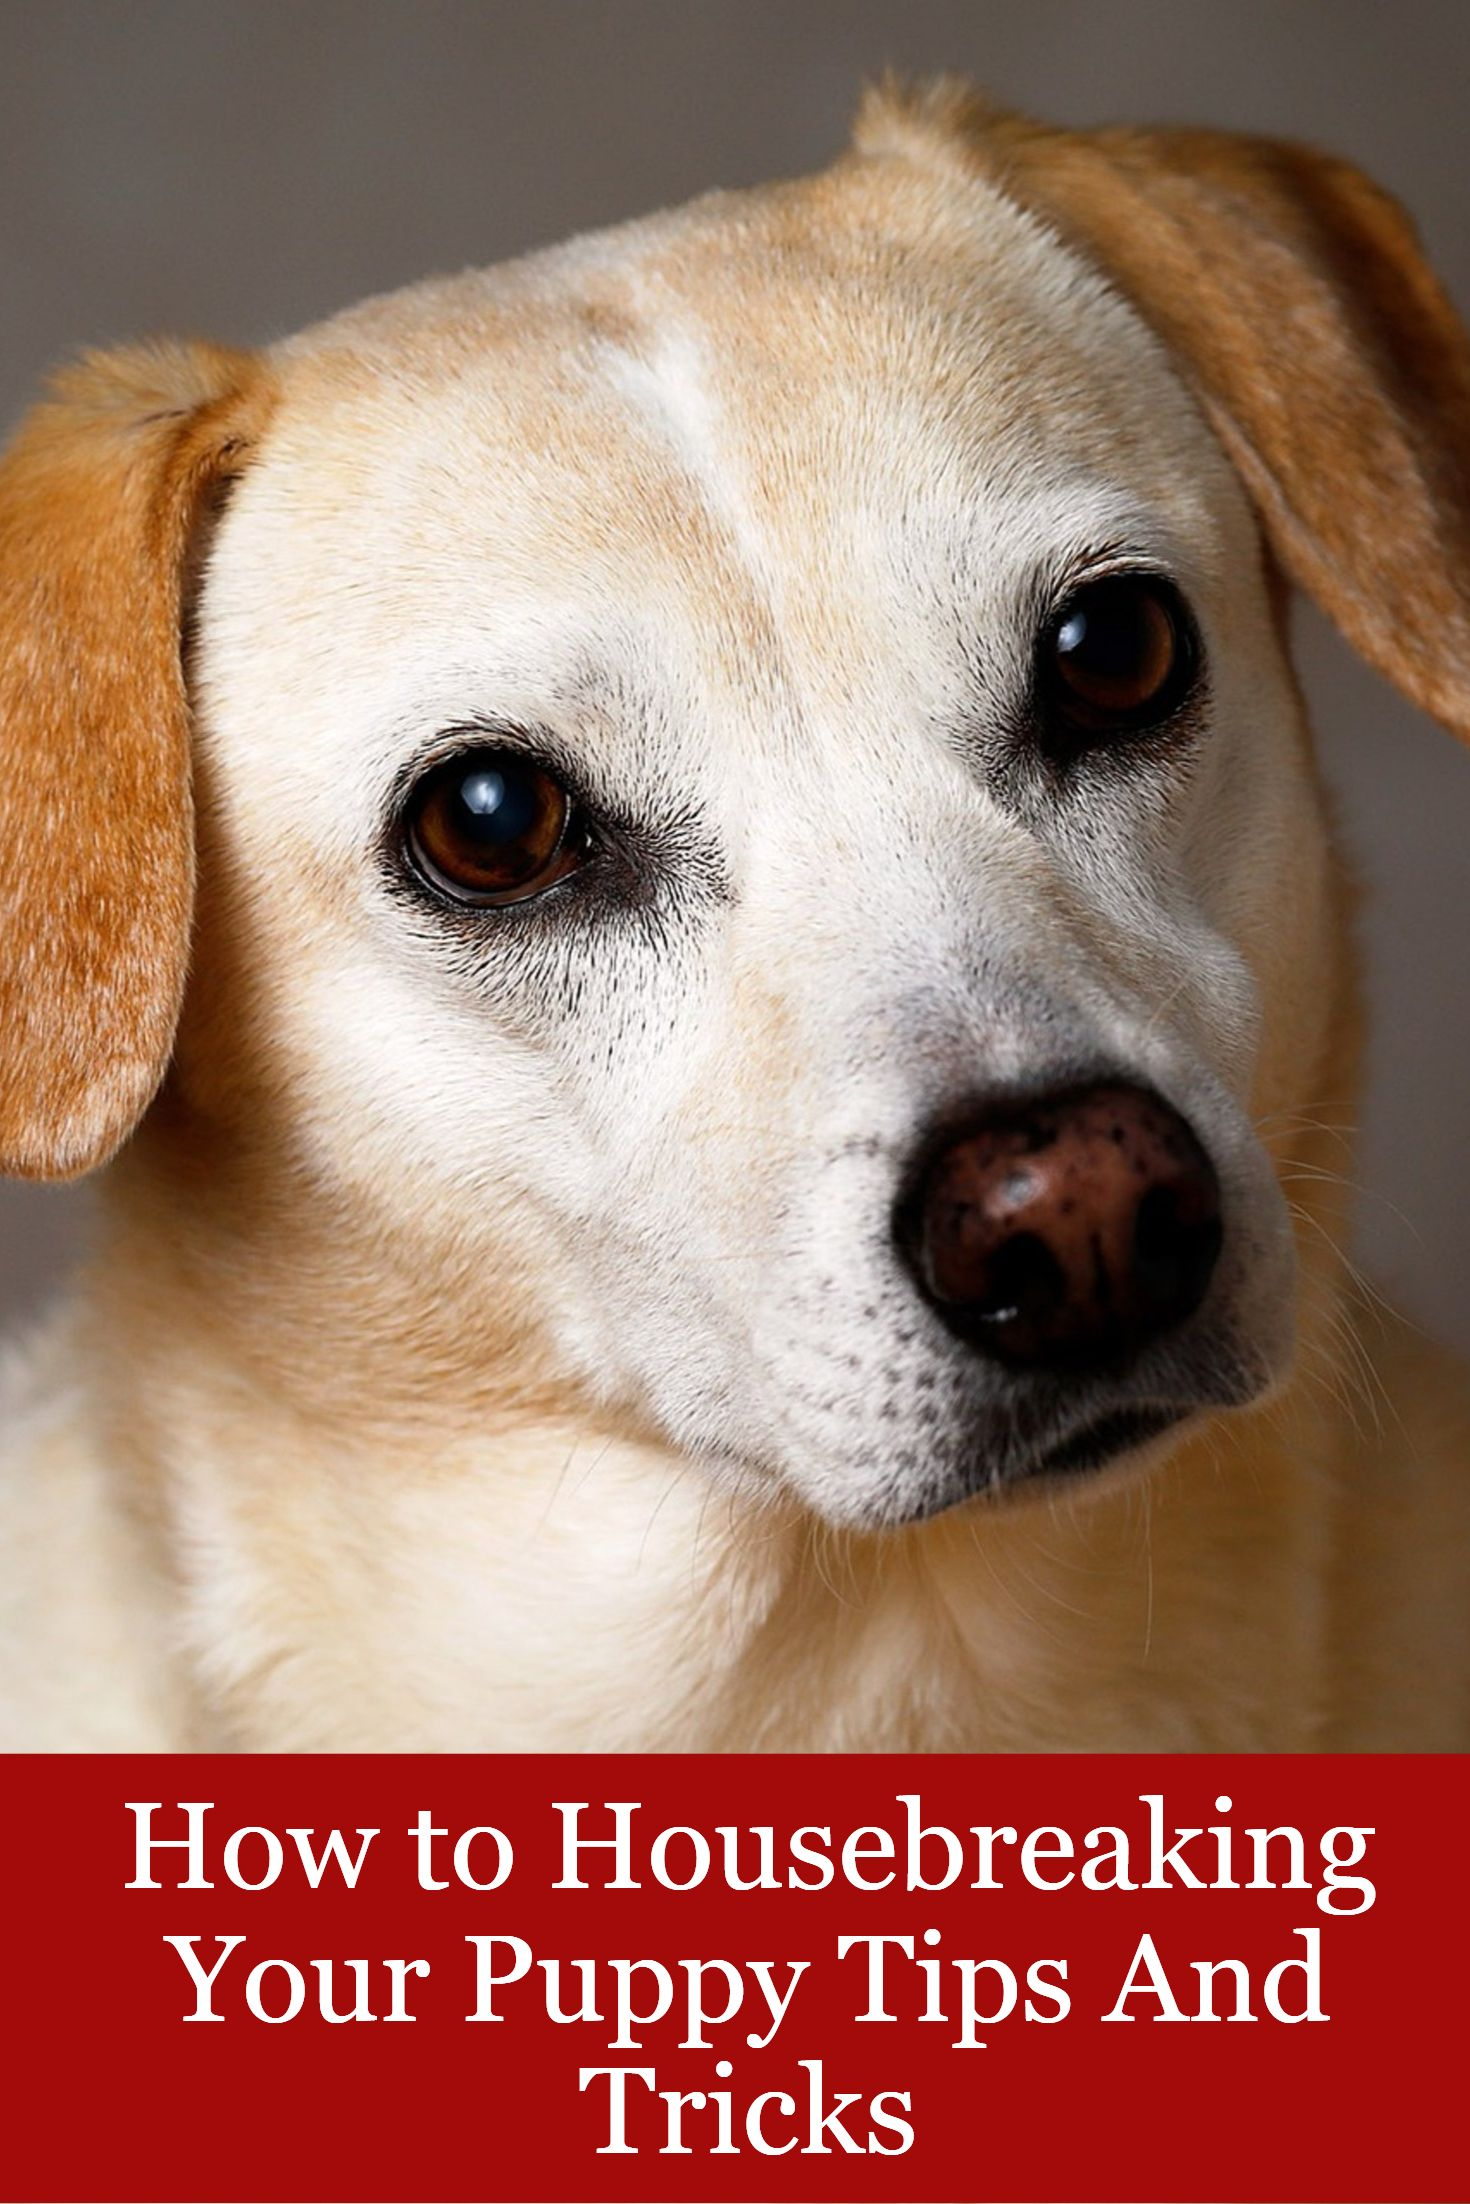 How To Housebreaking Your Puppy Tips And Tricks Puppy Training